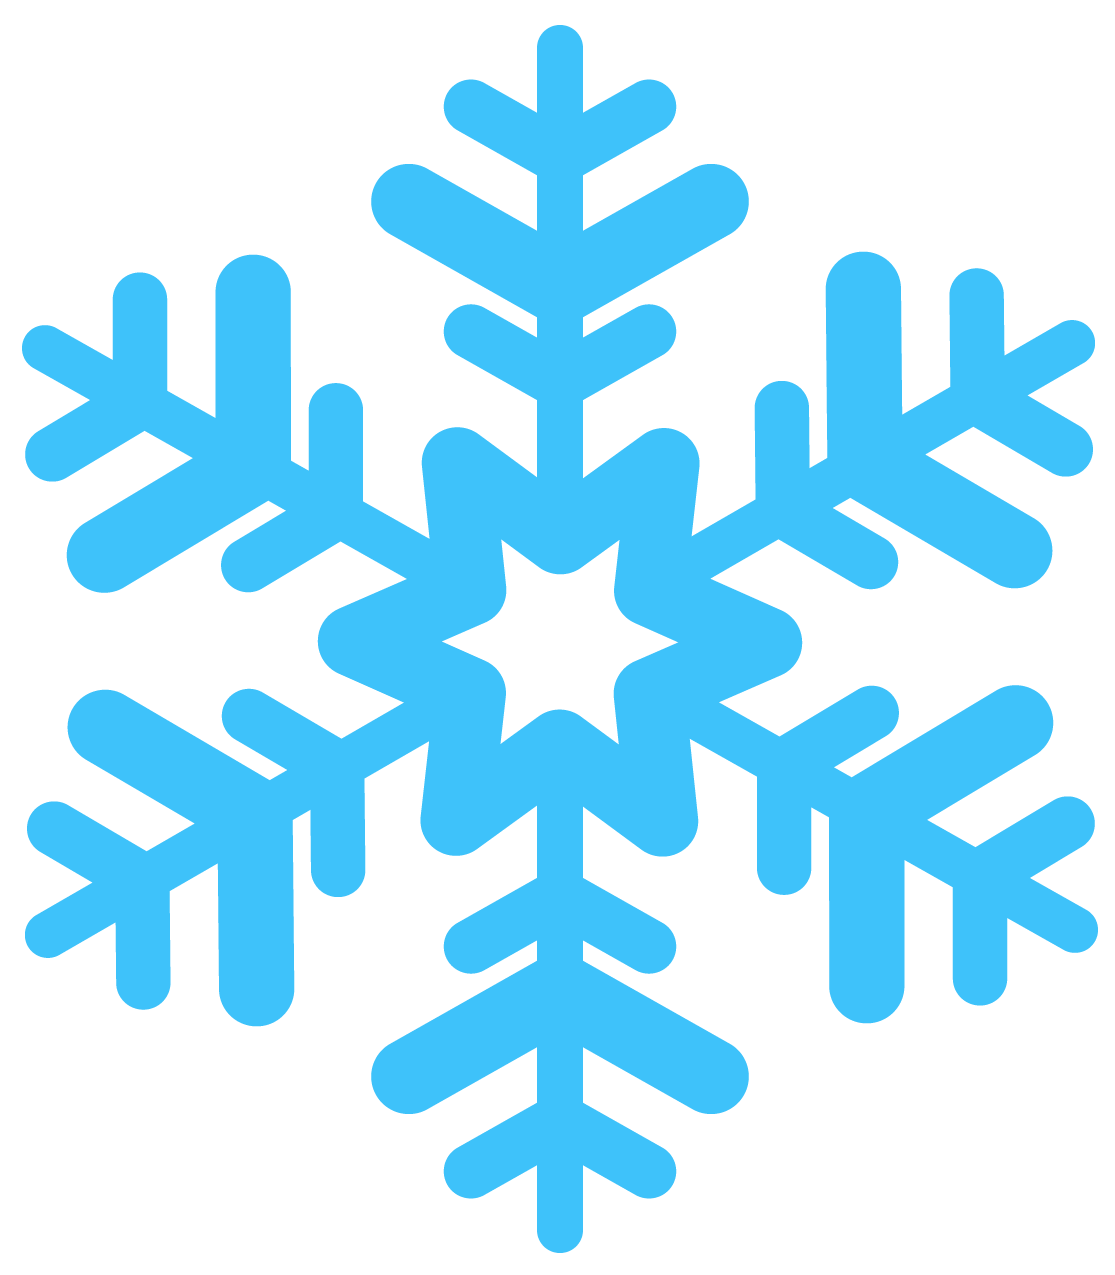 best snowflake png clipartionm #10489